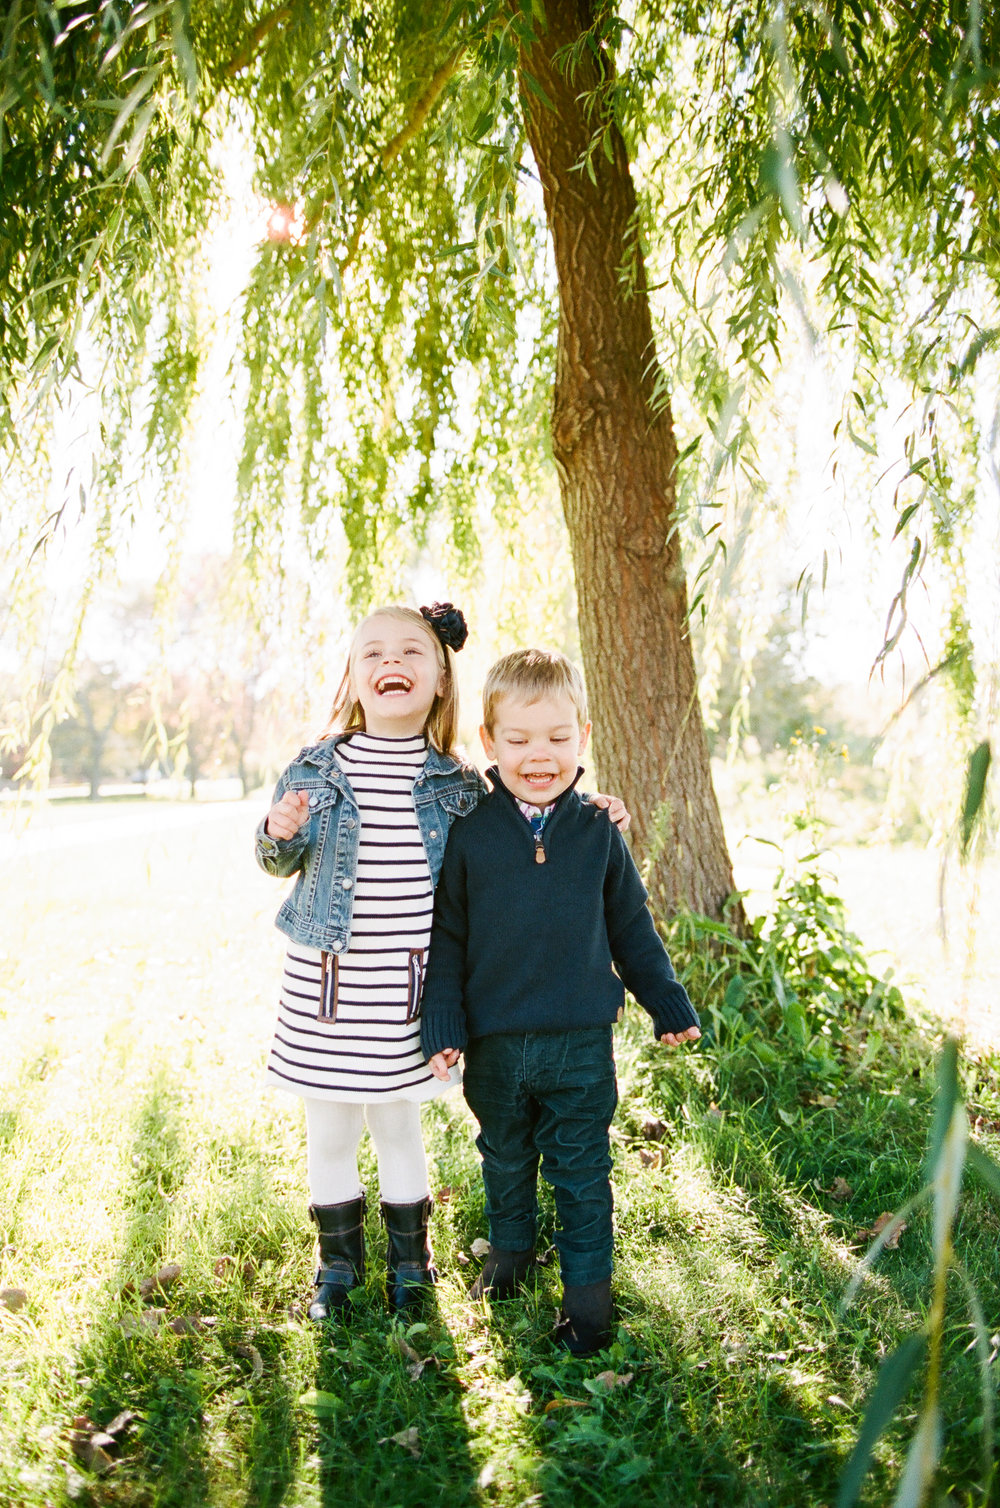 Siblings under a Willow Tree in Minneapolis, Minnesota